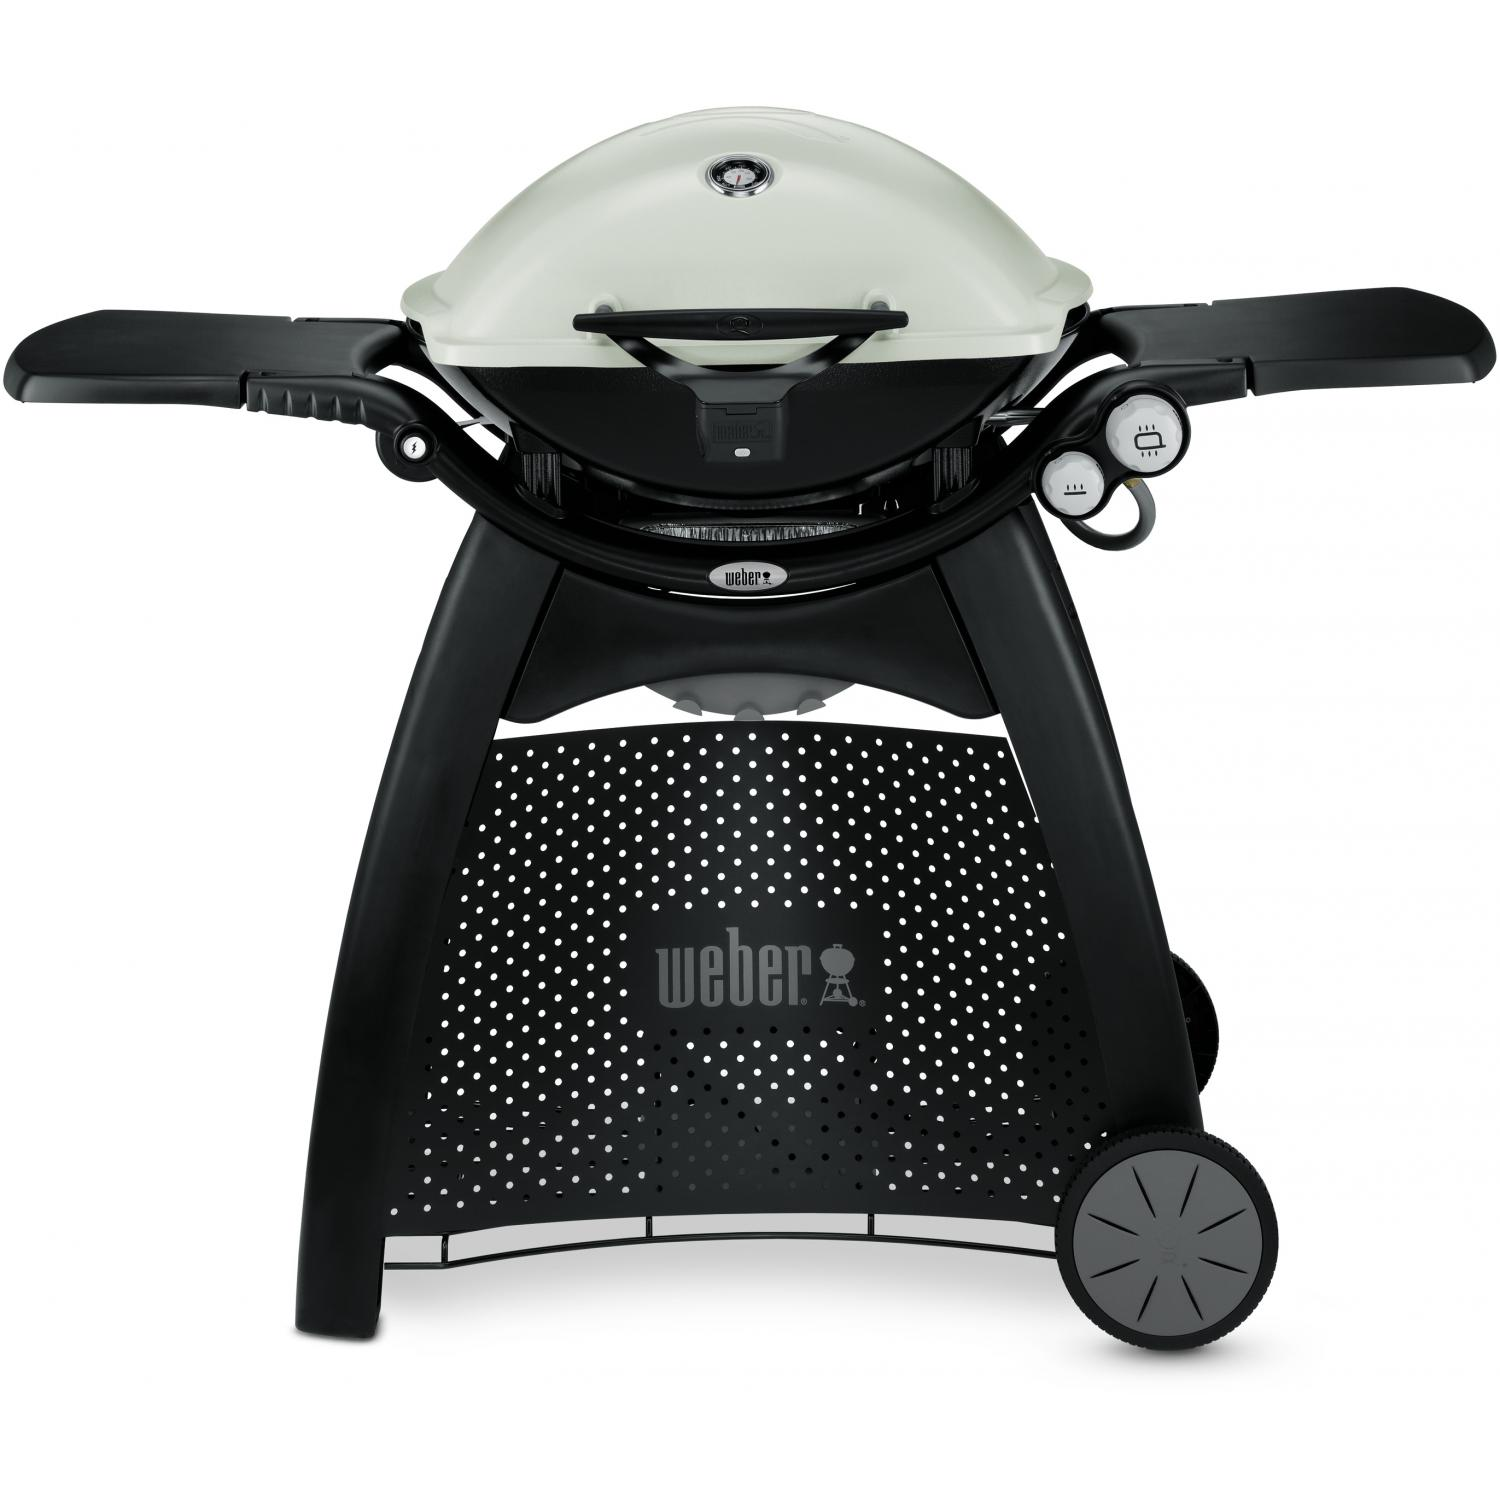 sales for weber q 3200 propane gas grill on cart titanium prices price llhowrll. Black Bedroom Furniture Sets. Home Design Ideas